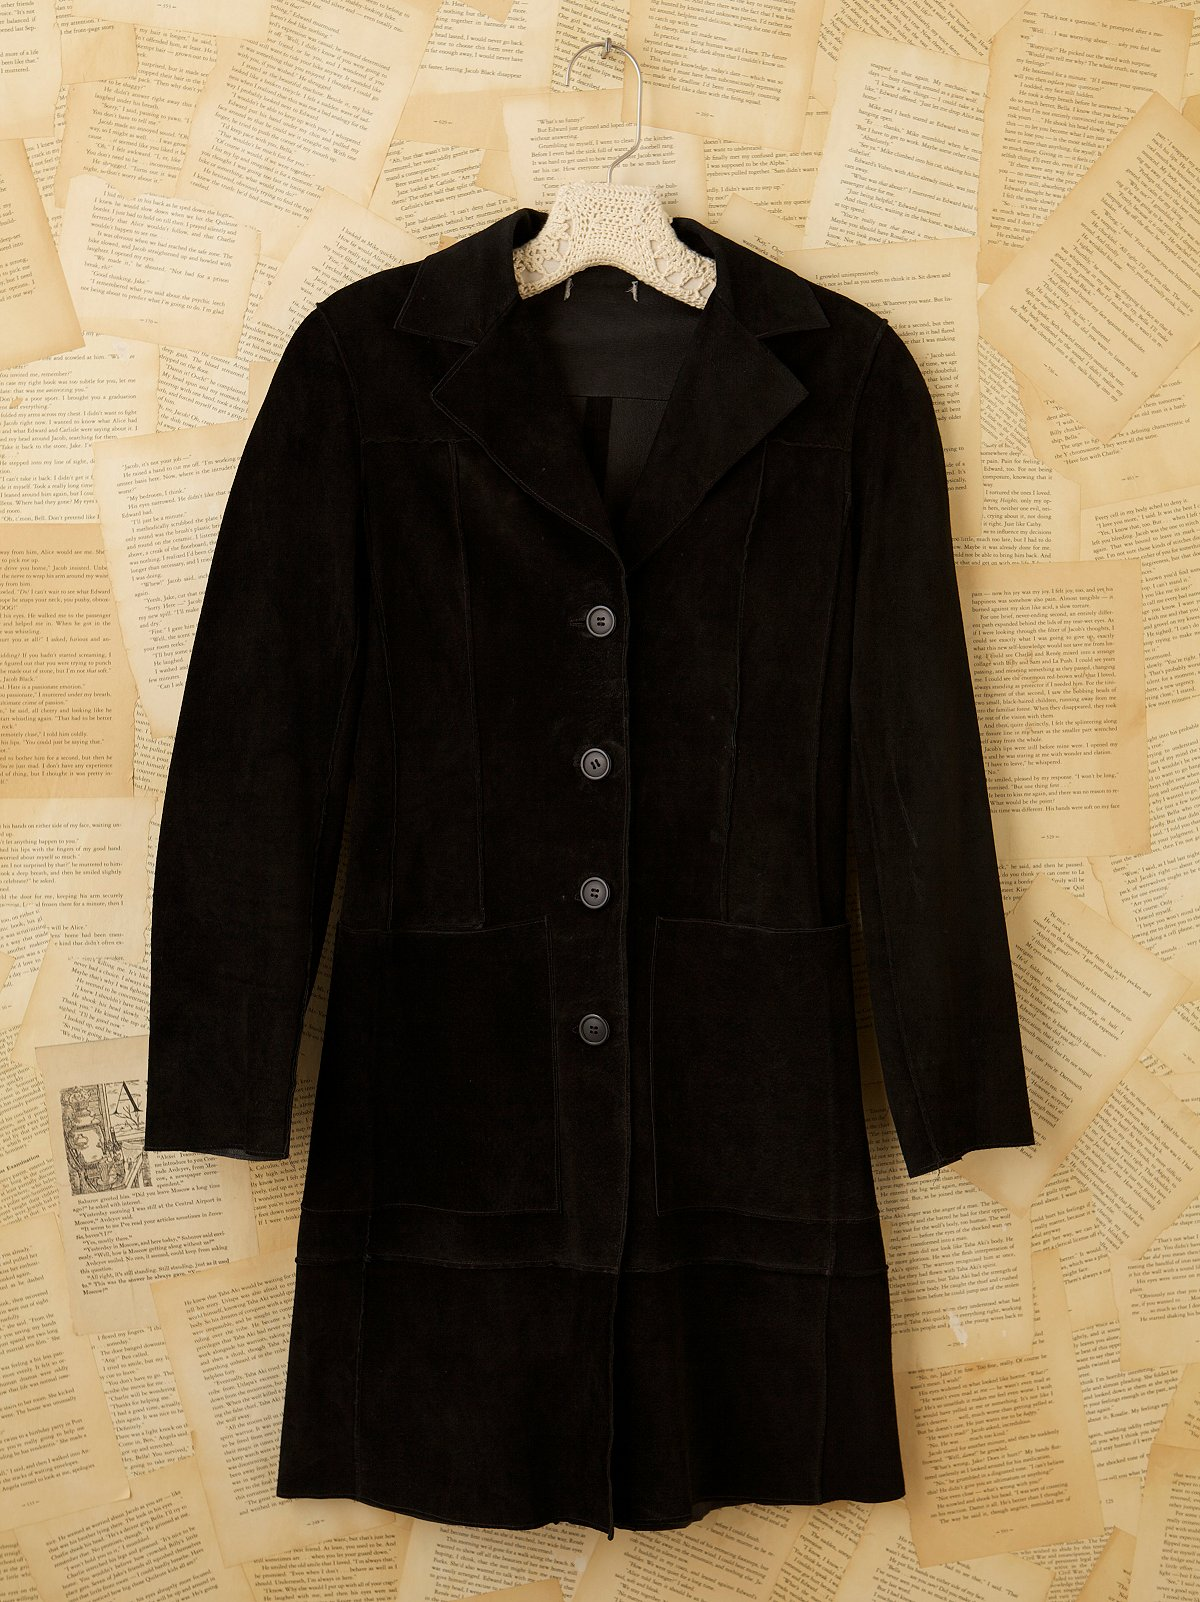 Vintage 70s Black Glove Leather Coat